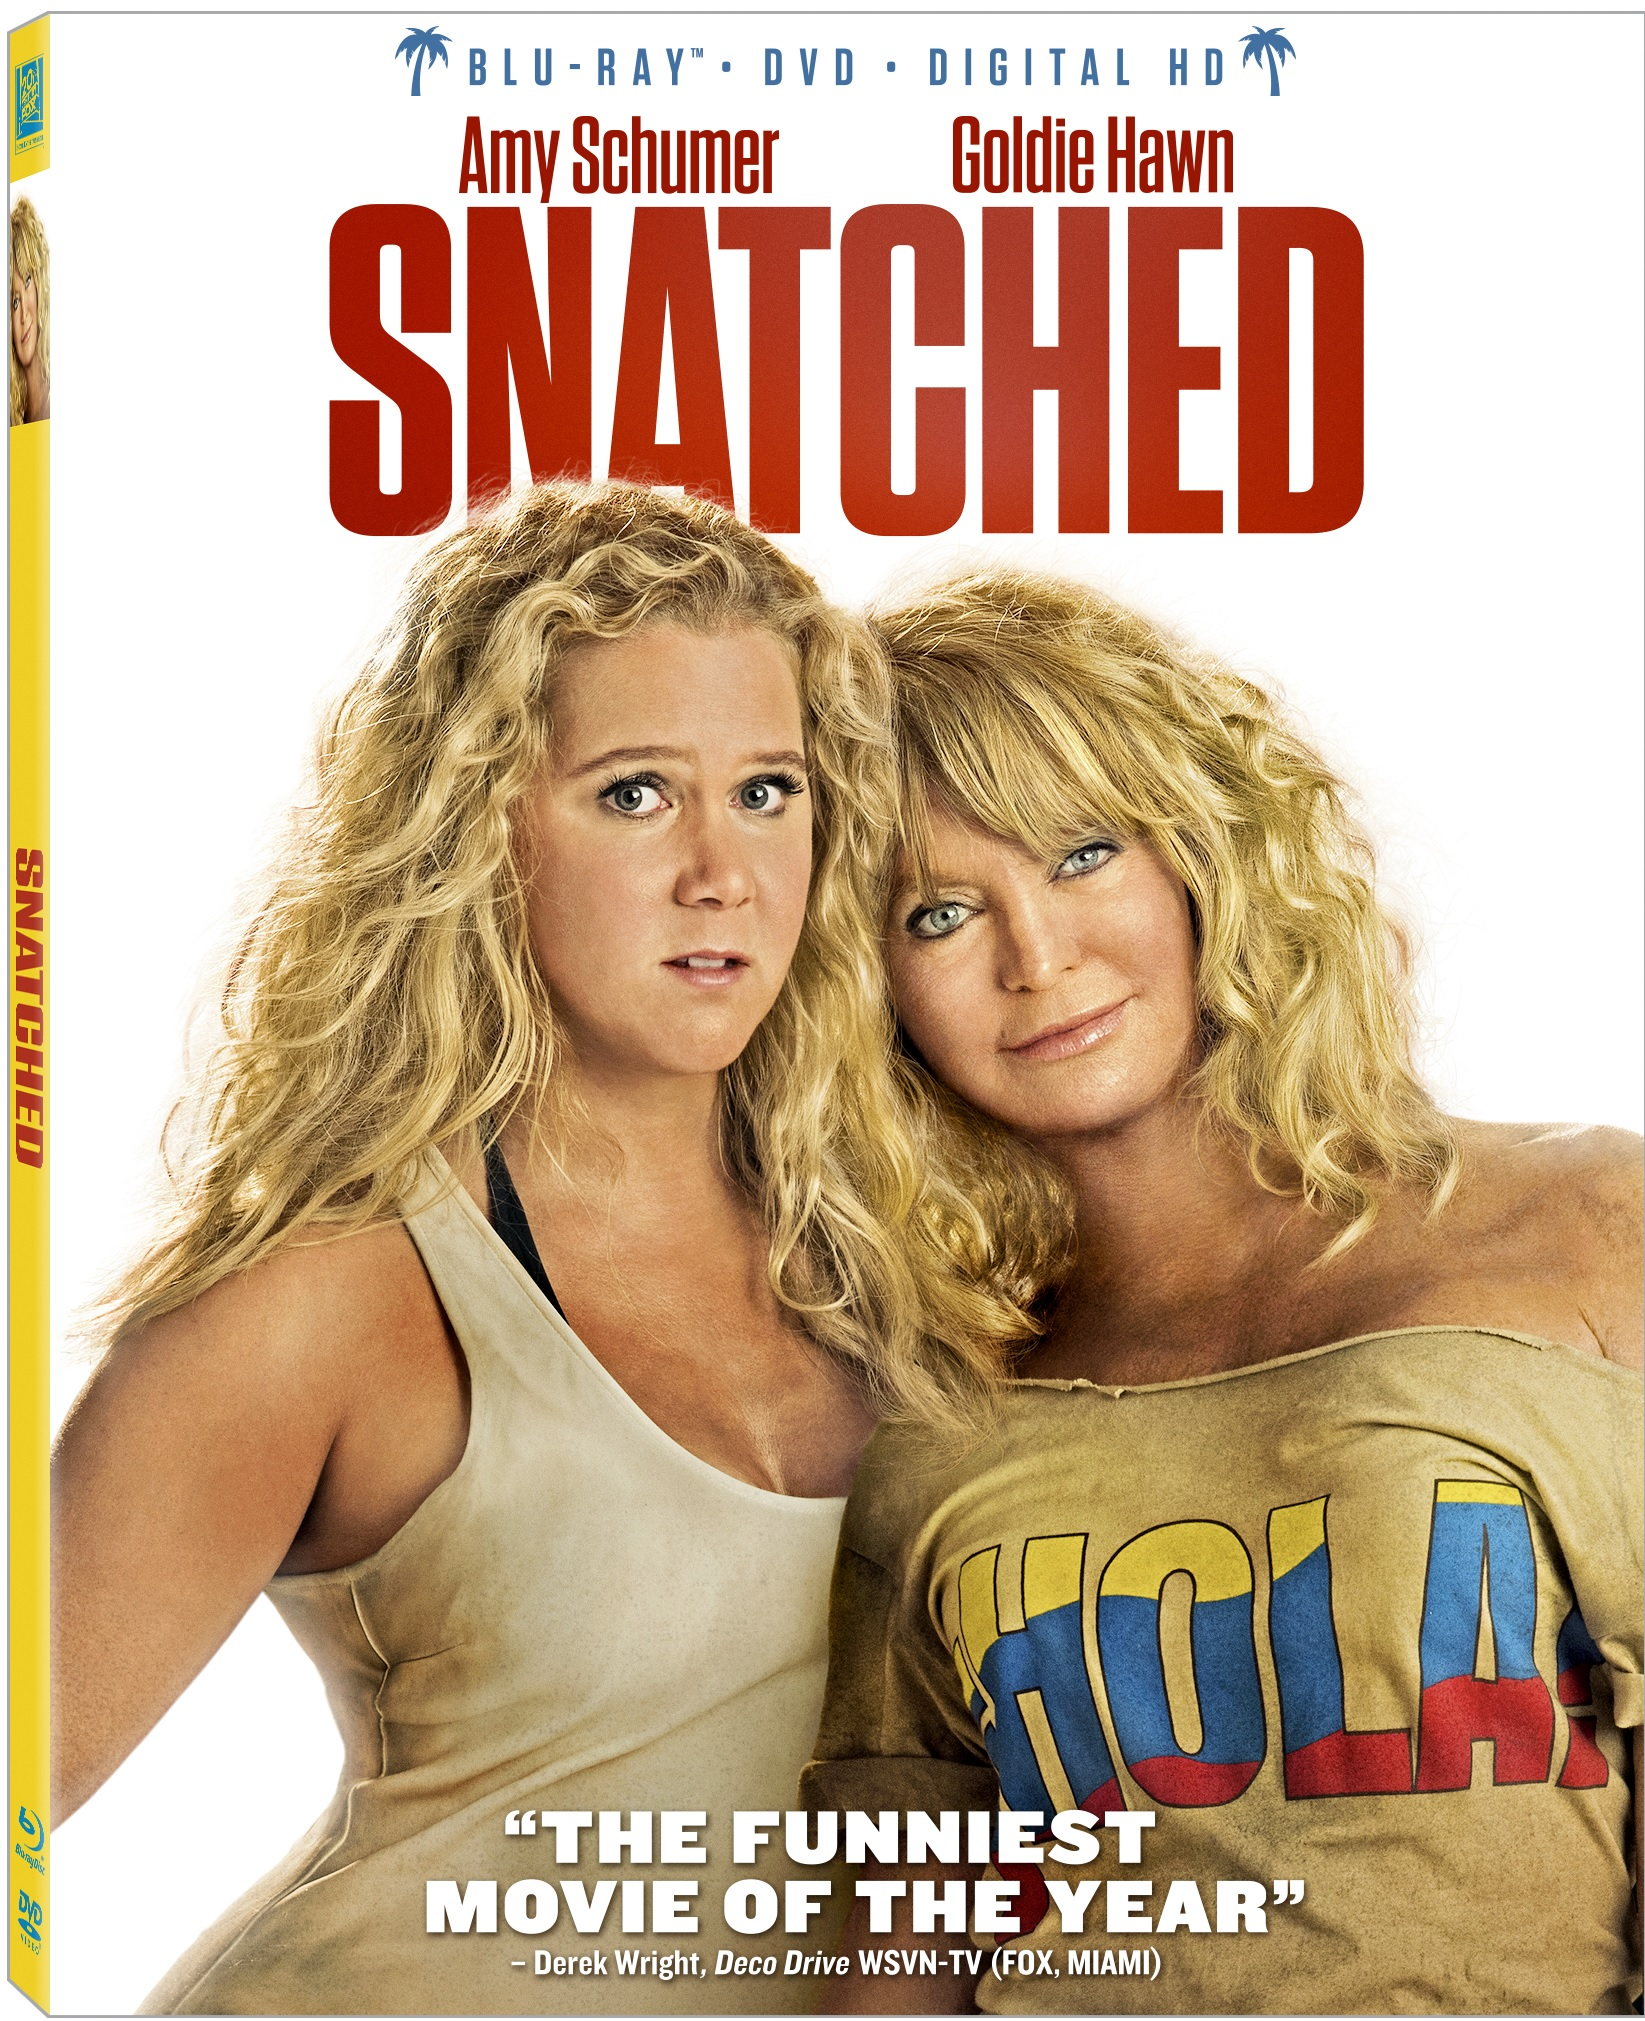 Snatched Blu-ray Review